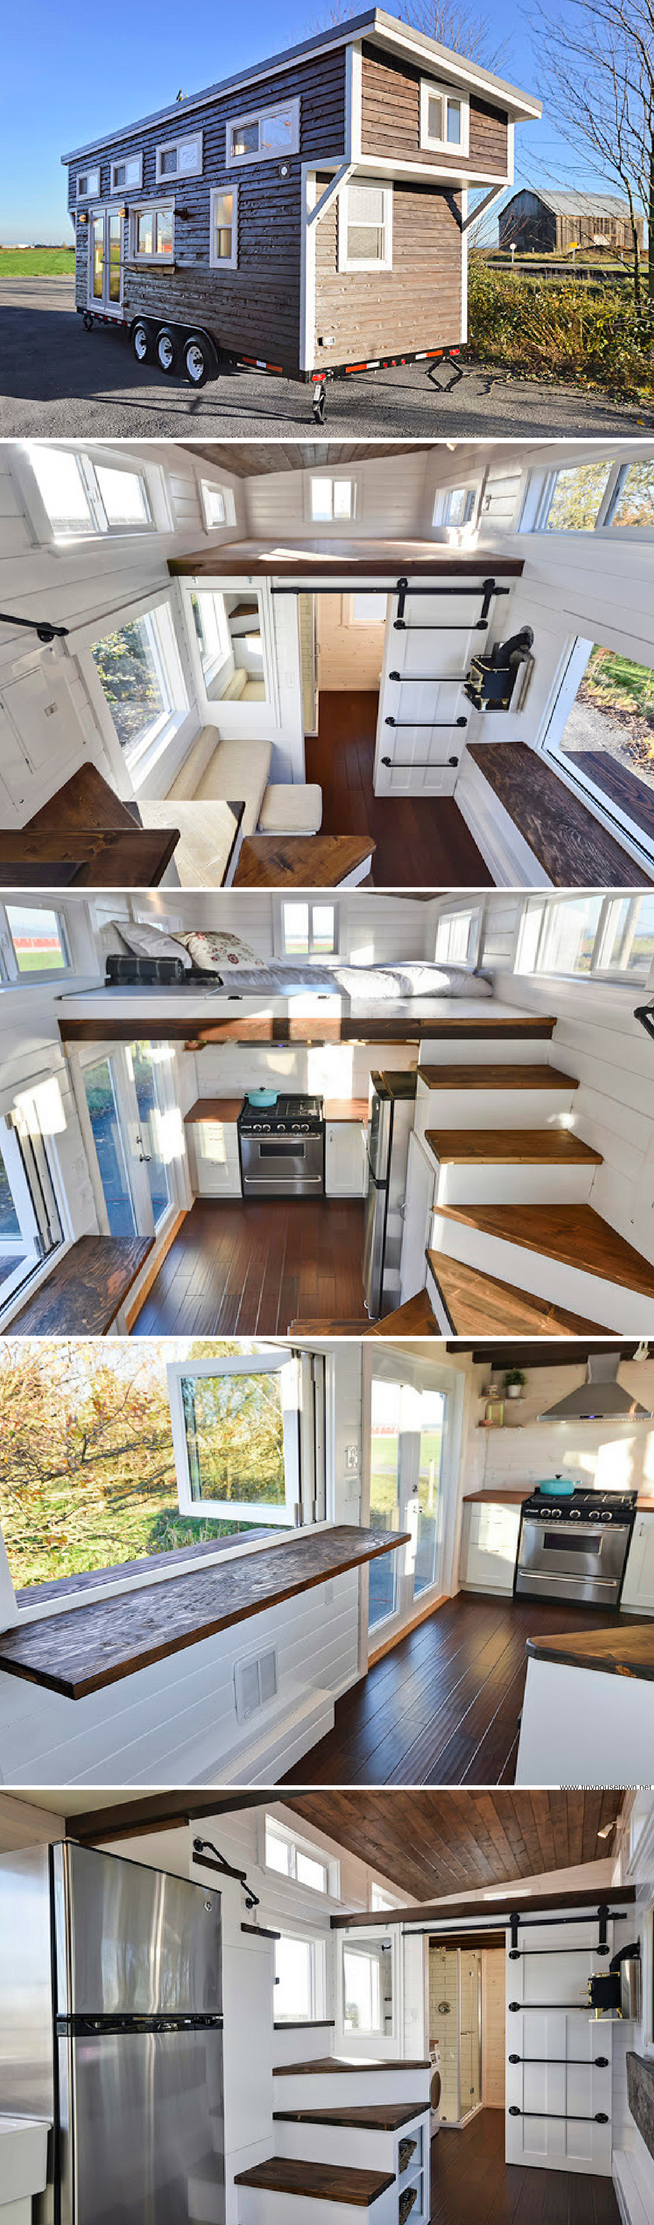 A Custom Tiny Home From Canadian Builder Mint House Company